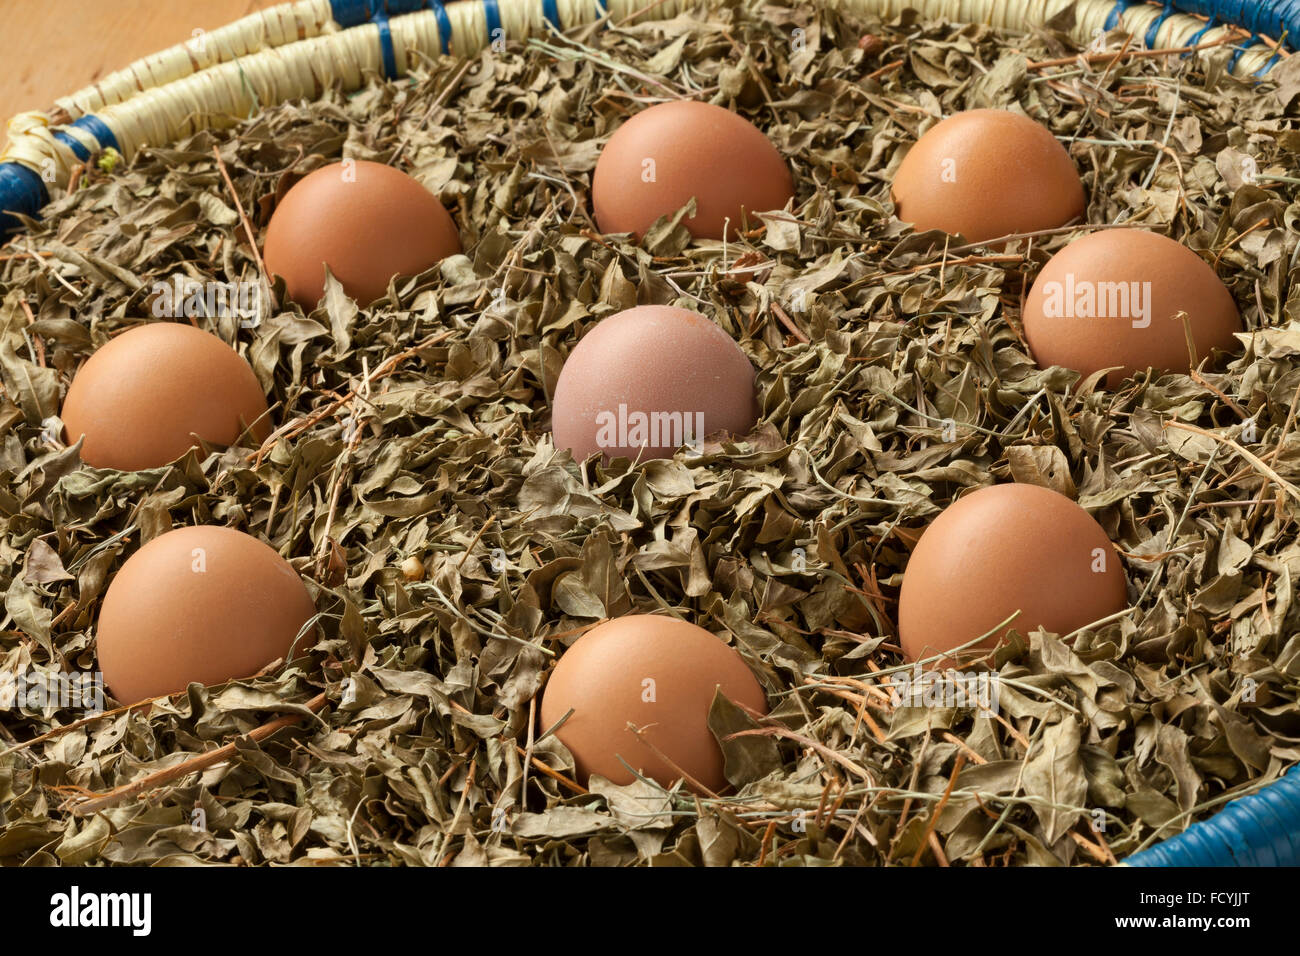 Eggs in a basket with dried henna leaves as a symbol for a Moroccan wedding party - Stock Image